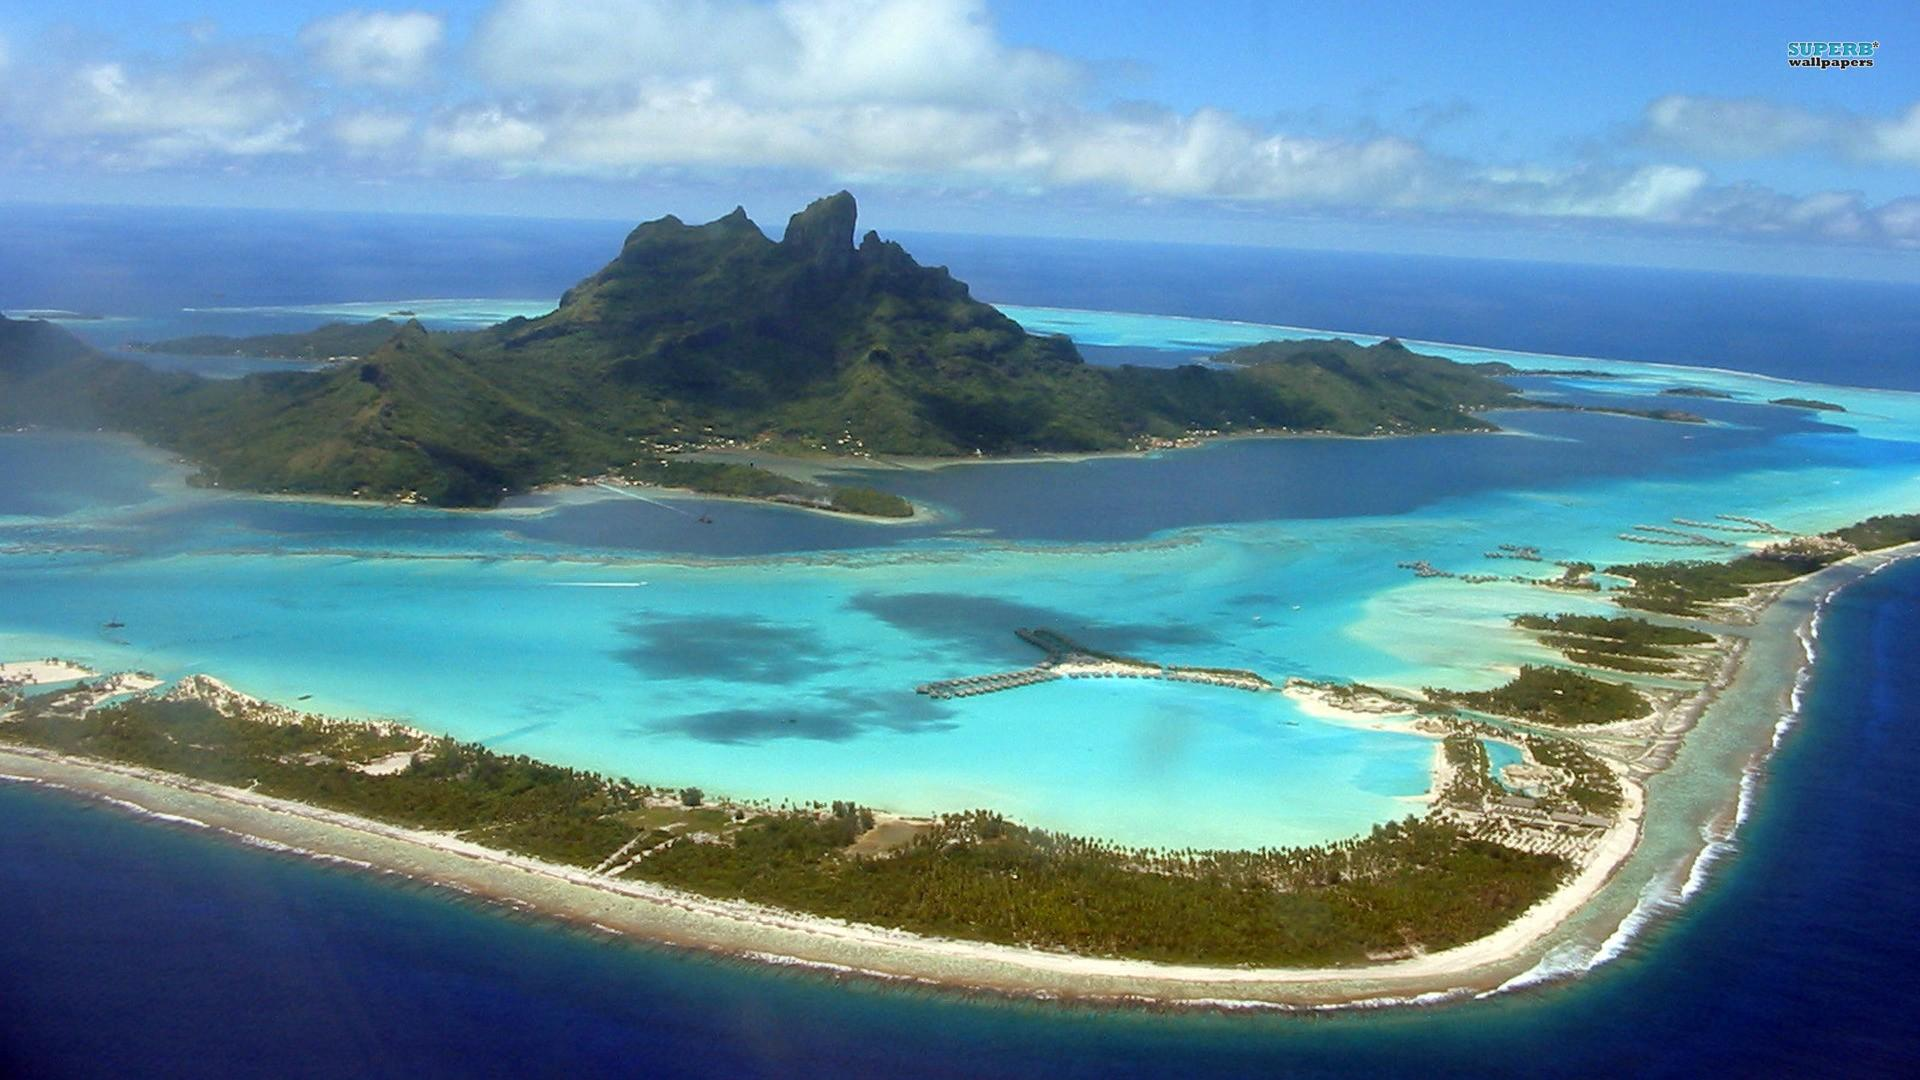 beautiful_atol_in_bora_bora.jpg